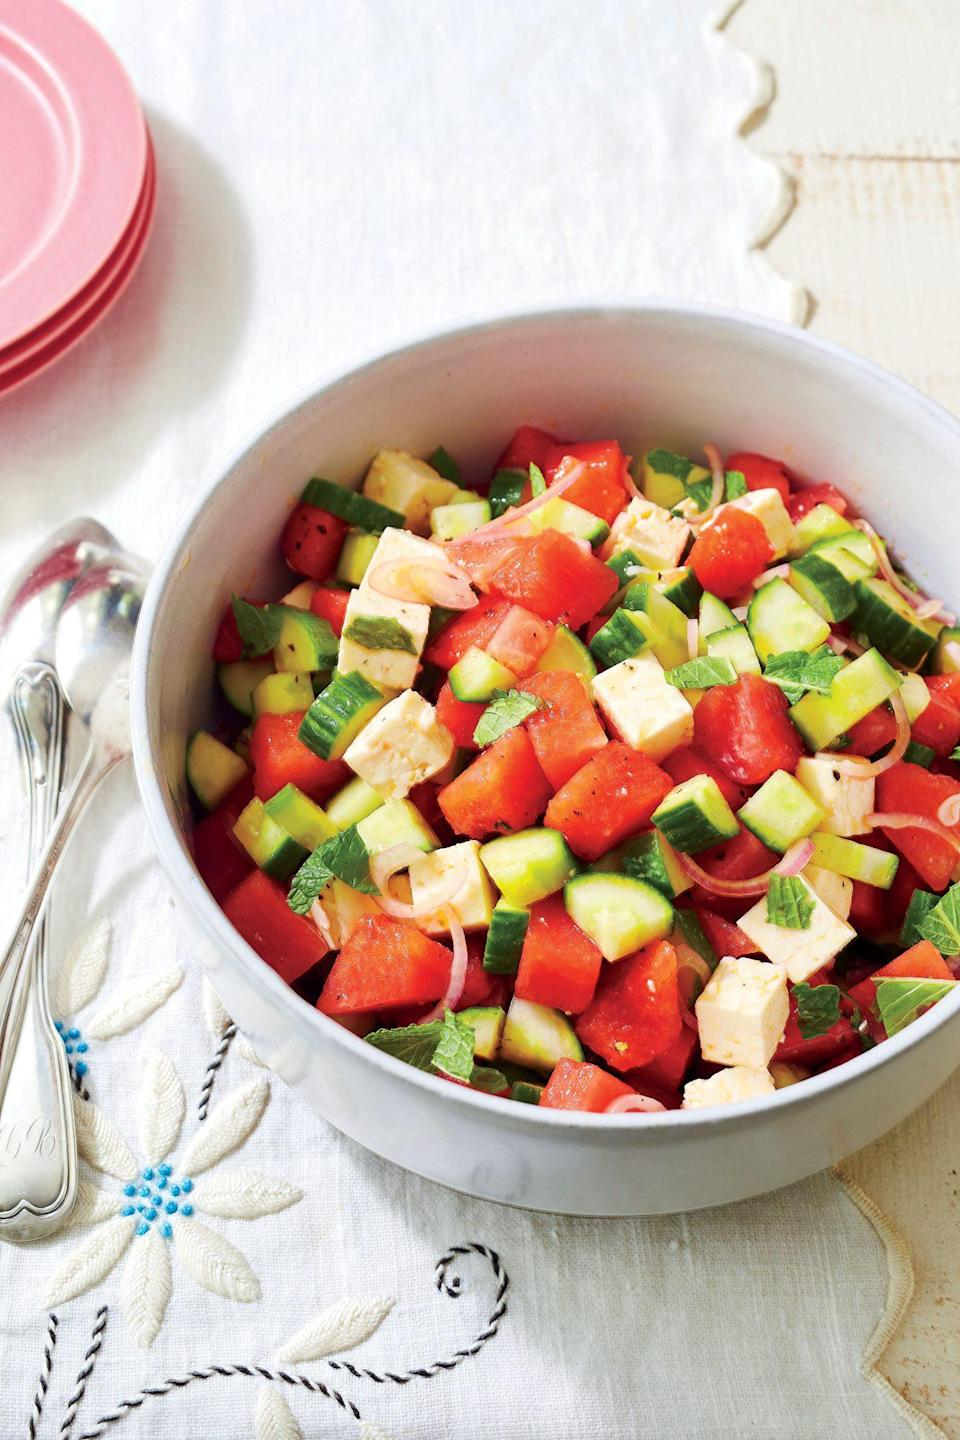 """<p><strong>Recipe:</strong> <a href=""""https://www.southernliving.com/recipes/watermelon-cucumber-feta-salad-recipe"""" rel=""""nofollow noopener"""" target=""""_blank"""" data-ylk=""""slk:Watermelon, Cucumber, and Feta Salad"""" class=""""link rapid-noclick-resp"""">Watermelon, Cucumber, and Feta Salad</a></p> <p>This is the salty-sweet combo you need for summer. Watermelon and cucumber add delicious crunch to the salad, while feta cheese brings plenty of salty flavor.</p>"""